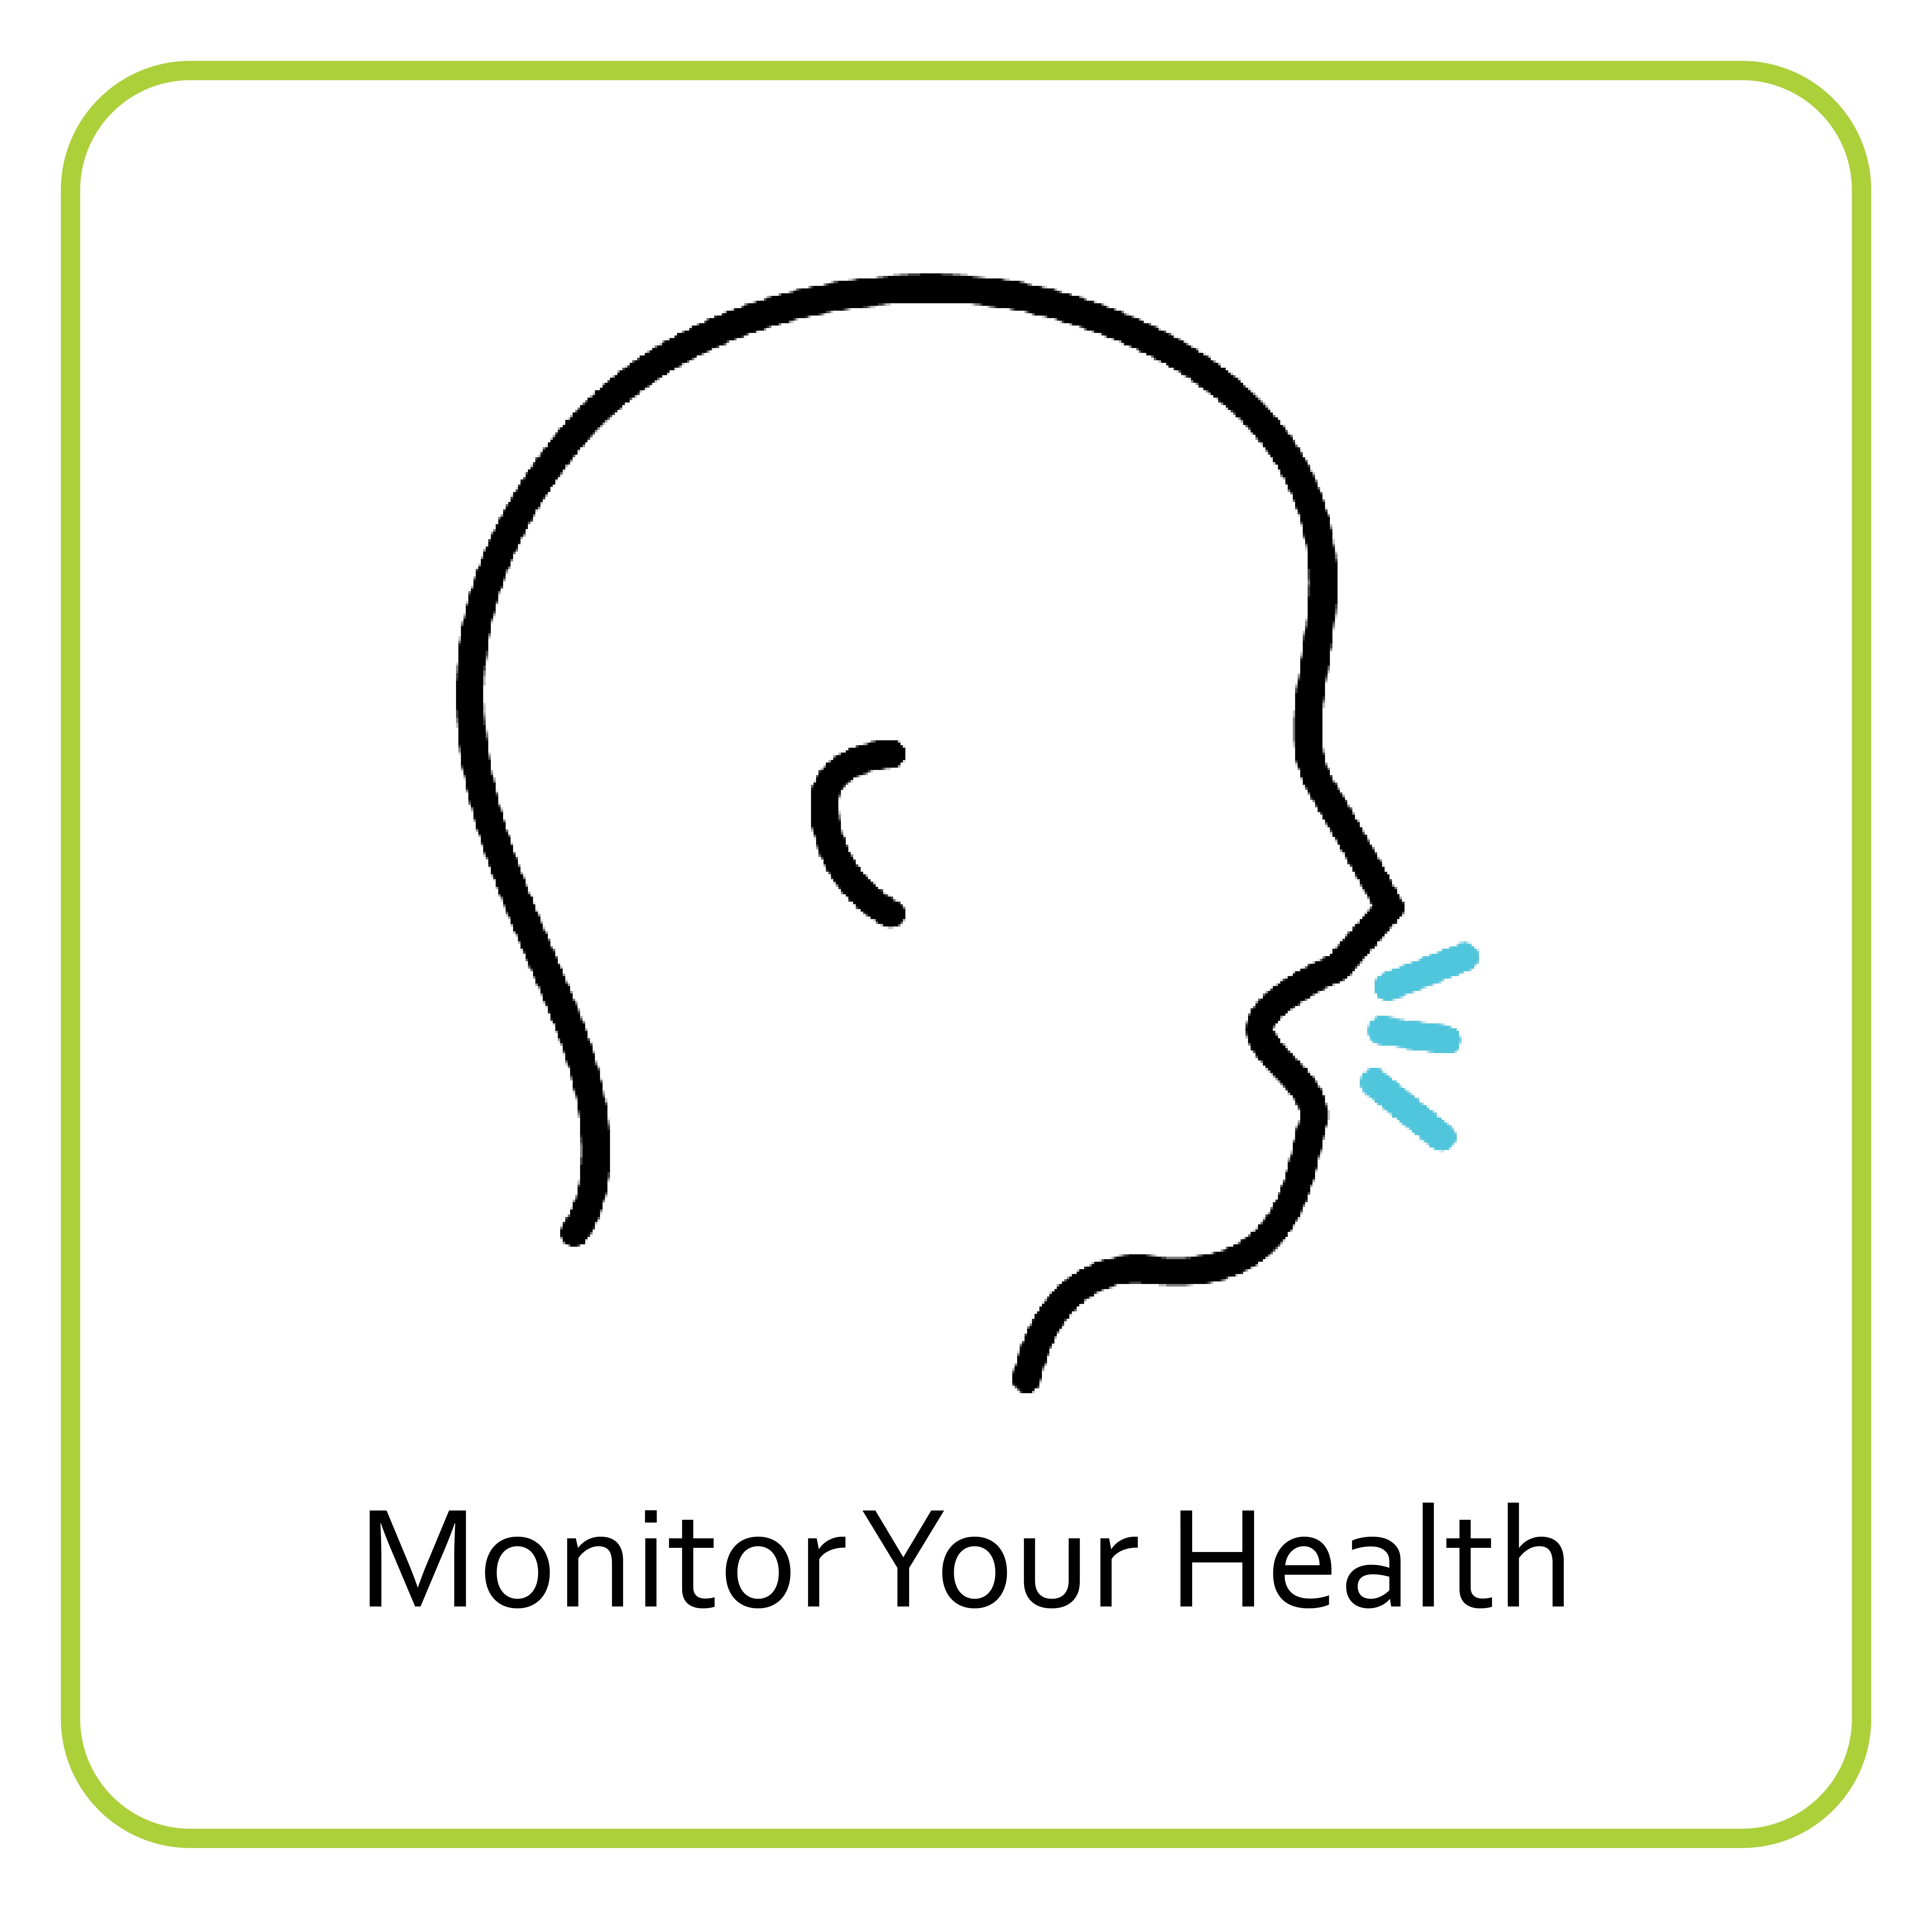 Monitoring your health information